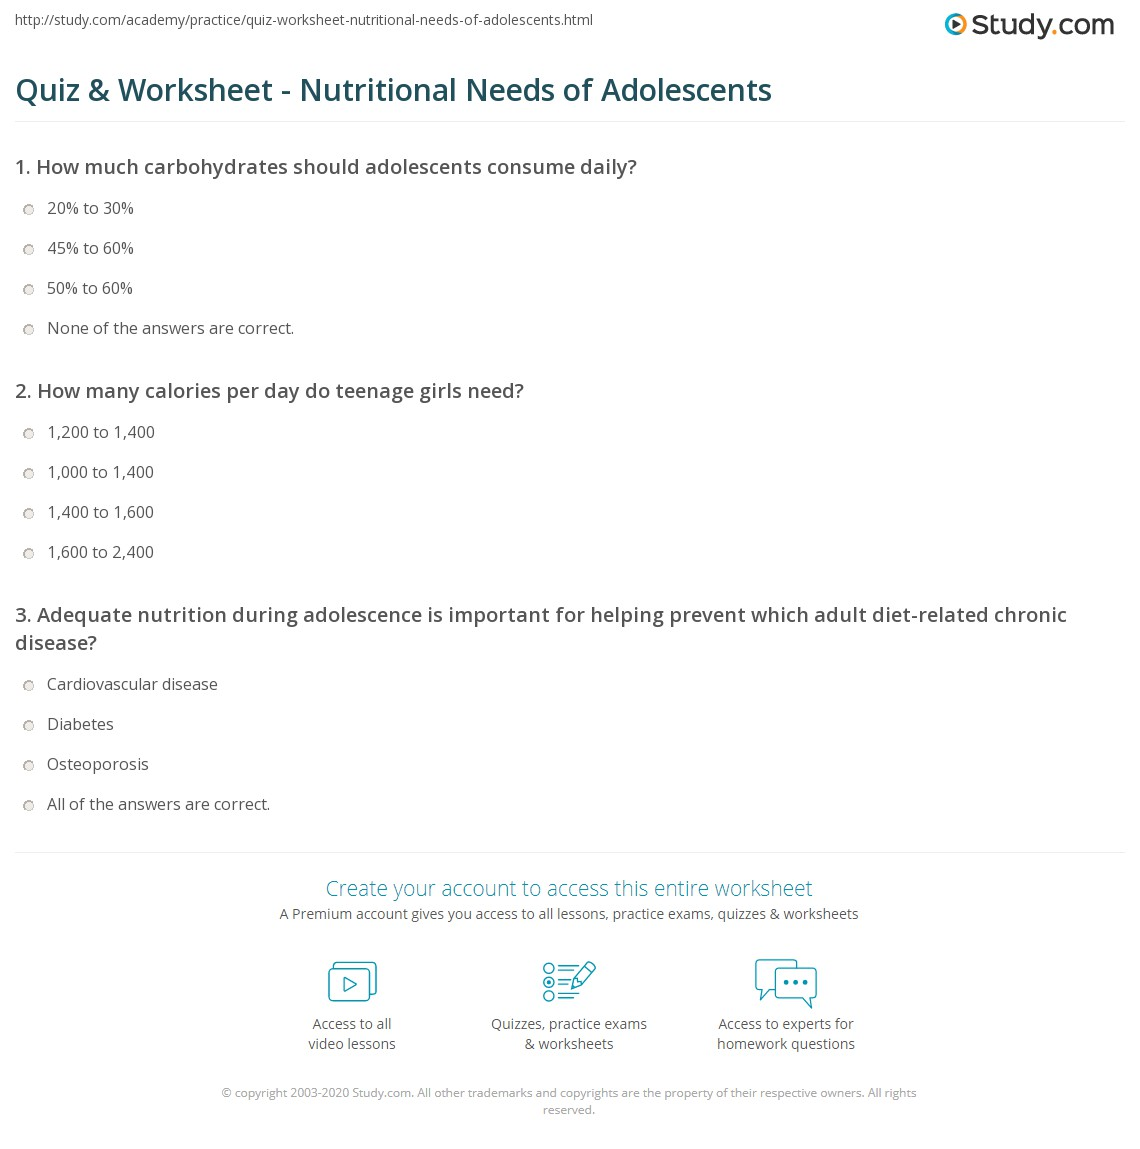 Quiz Worksheet Nutritional Needs of Adolescents – Nutrition Worksheets for Middle School